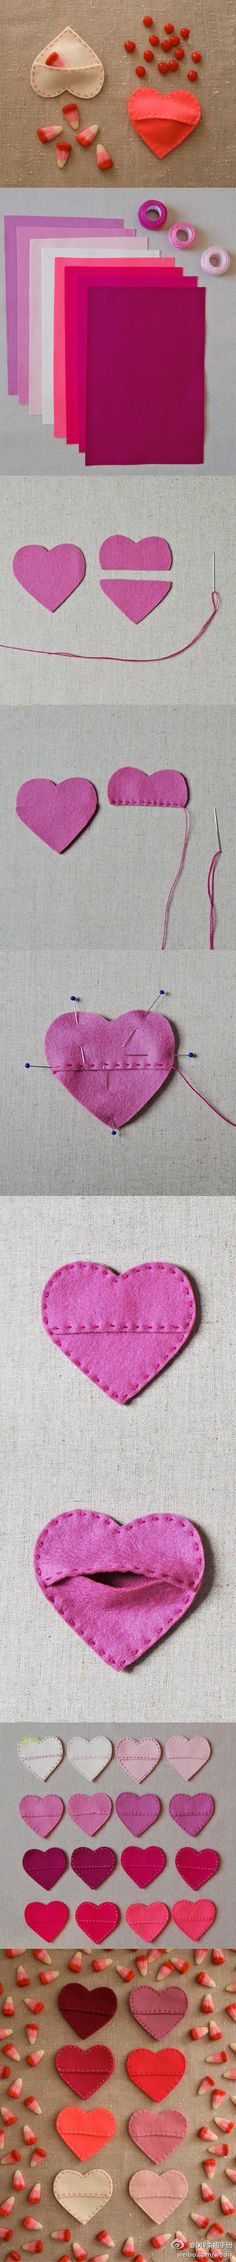 Felt Heart - Tutorial